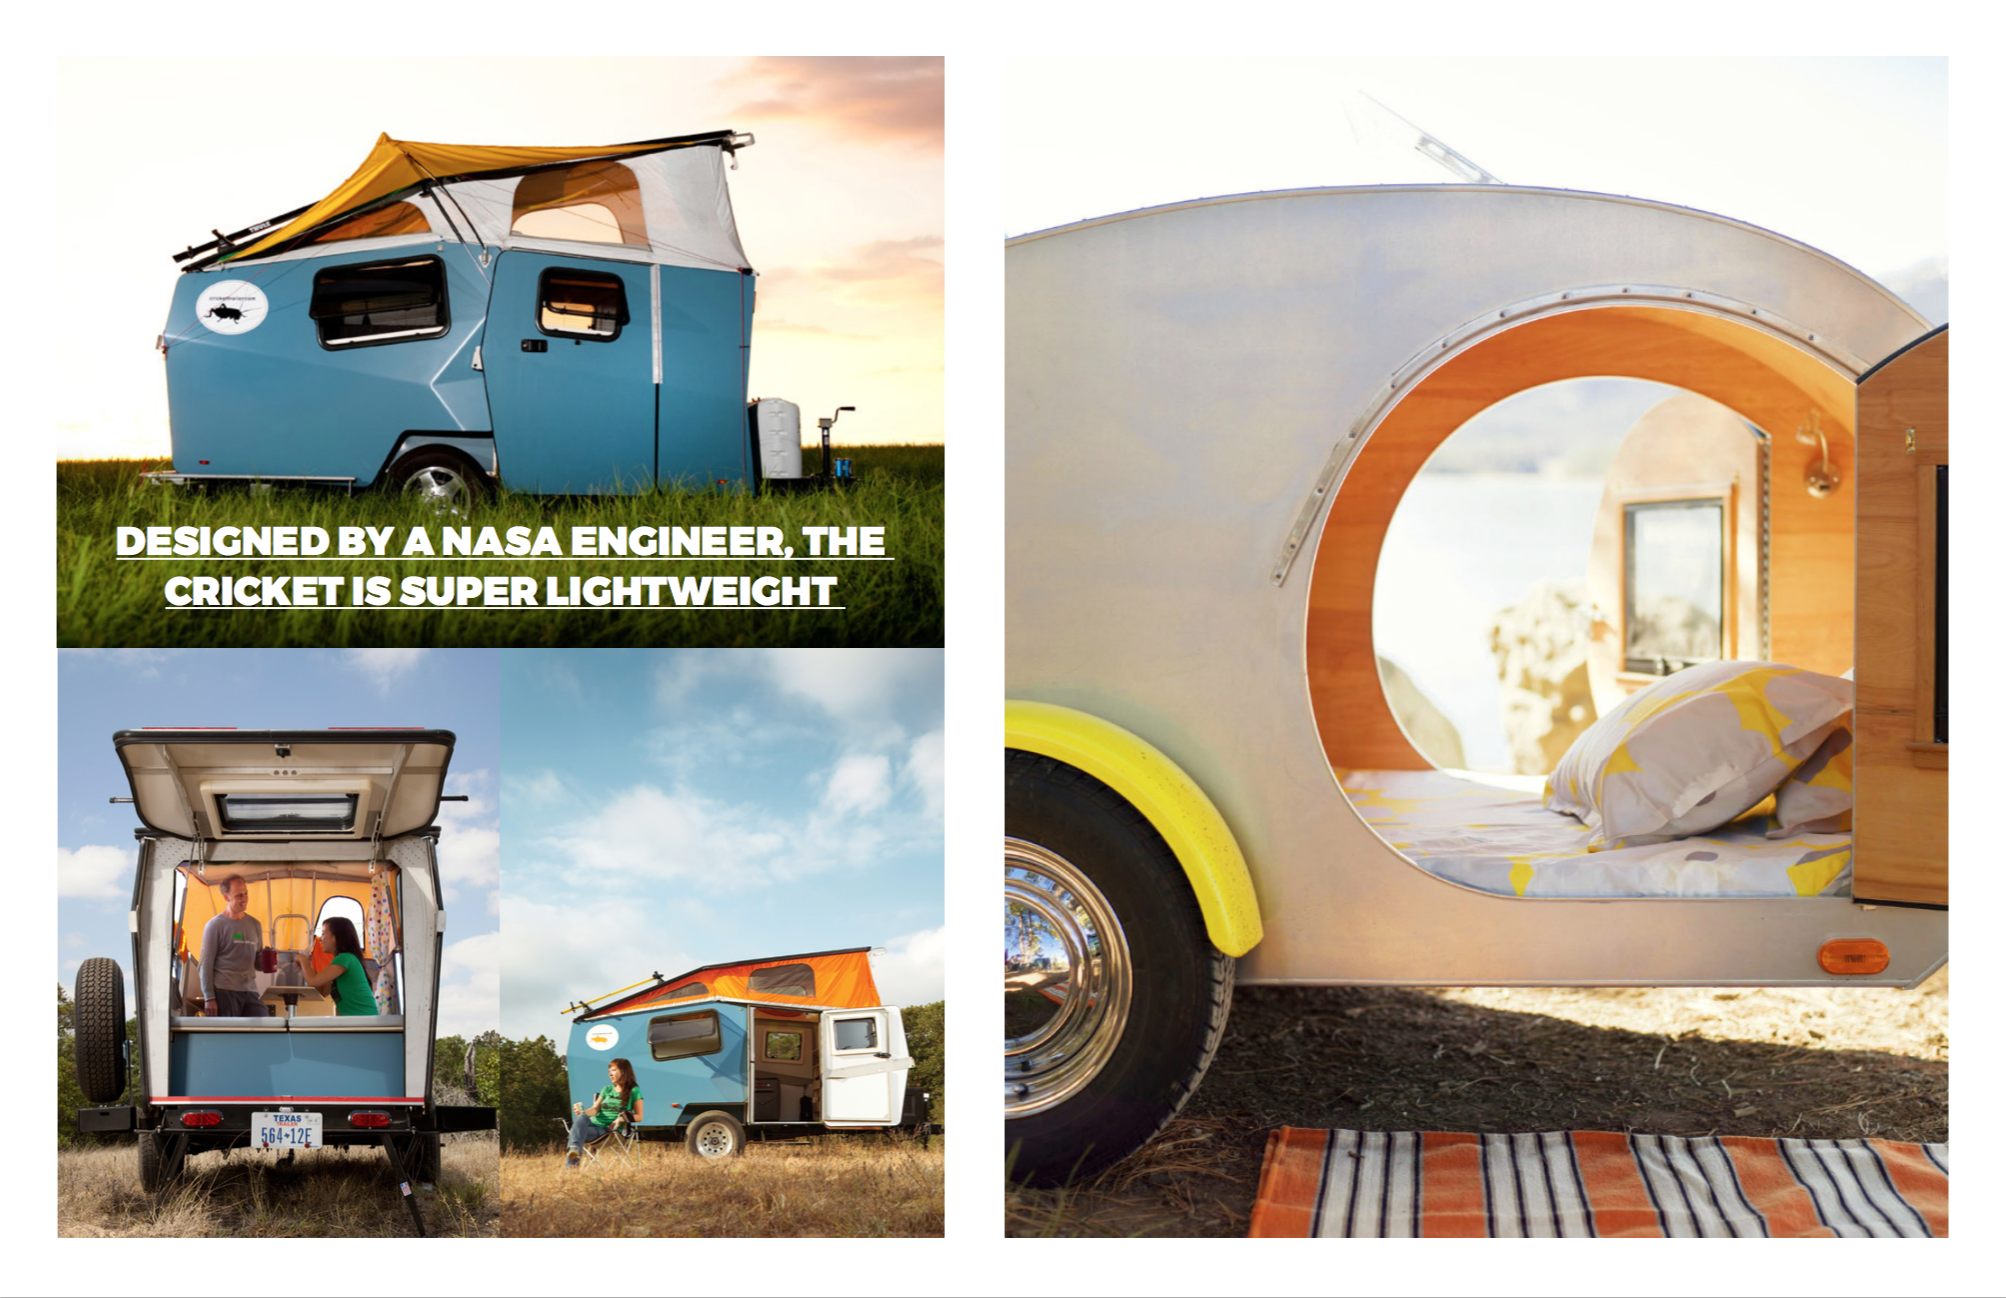 Left; The amazing Cricket These picture first appeared in  Dwell here , Part Tent, Part RV, the NASA inspired Cricket is the go to camper for the modern road tripper. Right: Airy Teardrop Trailer was first seen at Getaway Inspiration at  Dwell here .